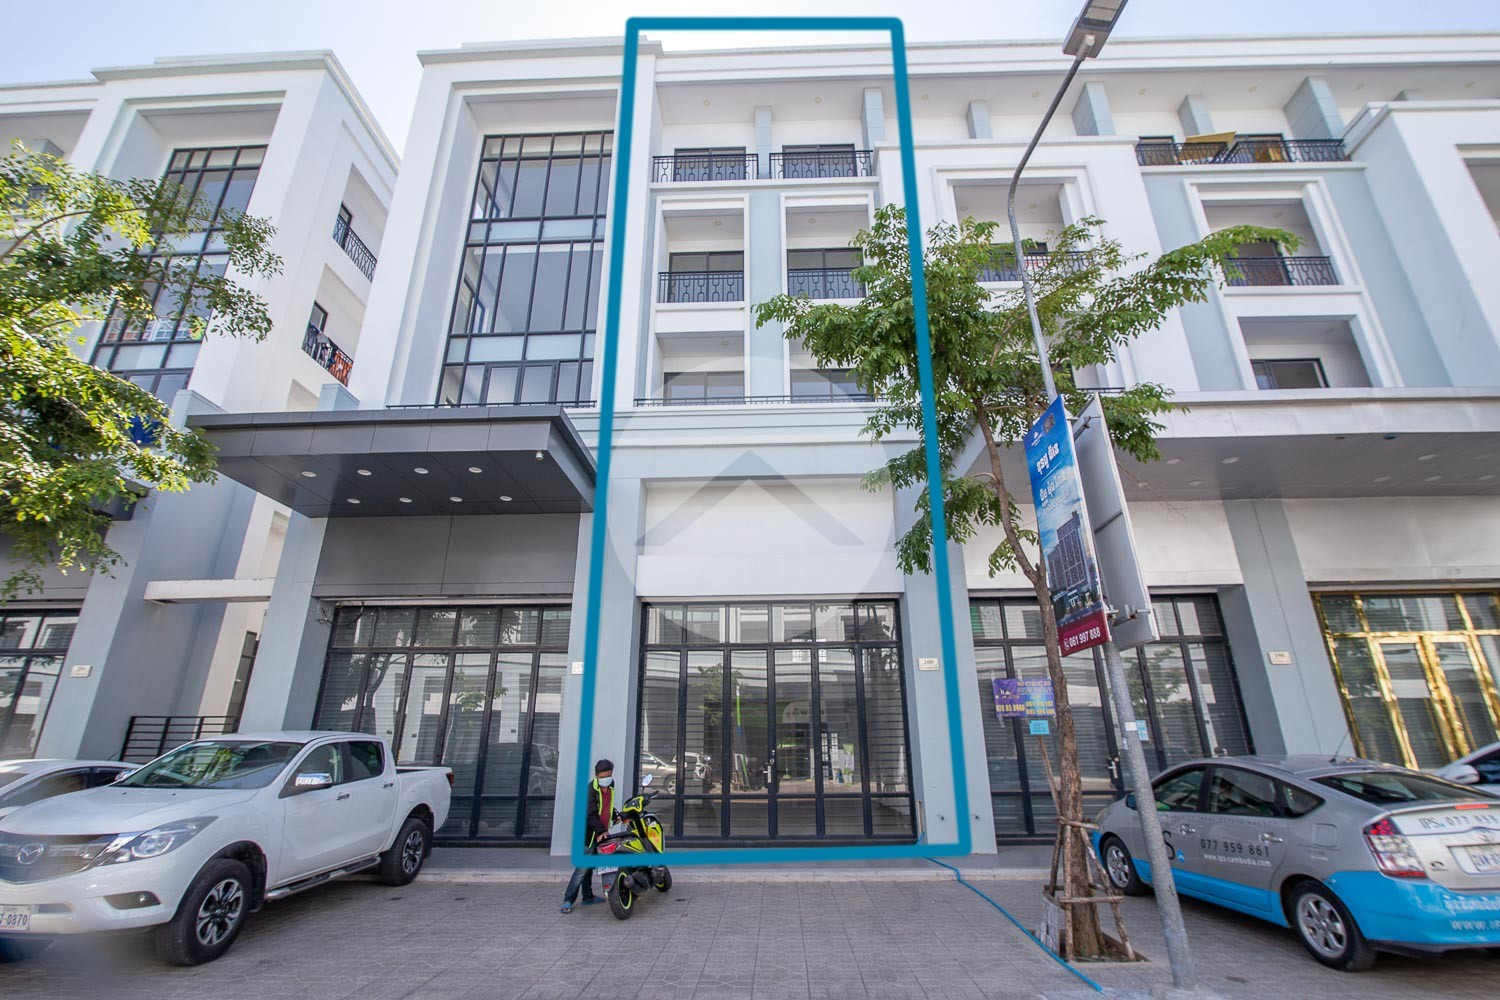 4 Bedroom Shophouse For Rent - Mean Chey, Phnom Penh